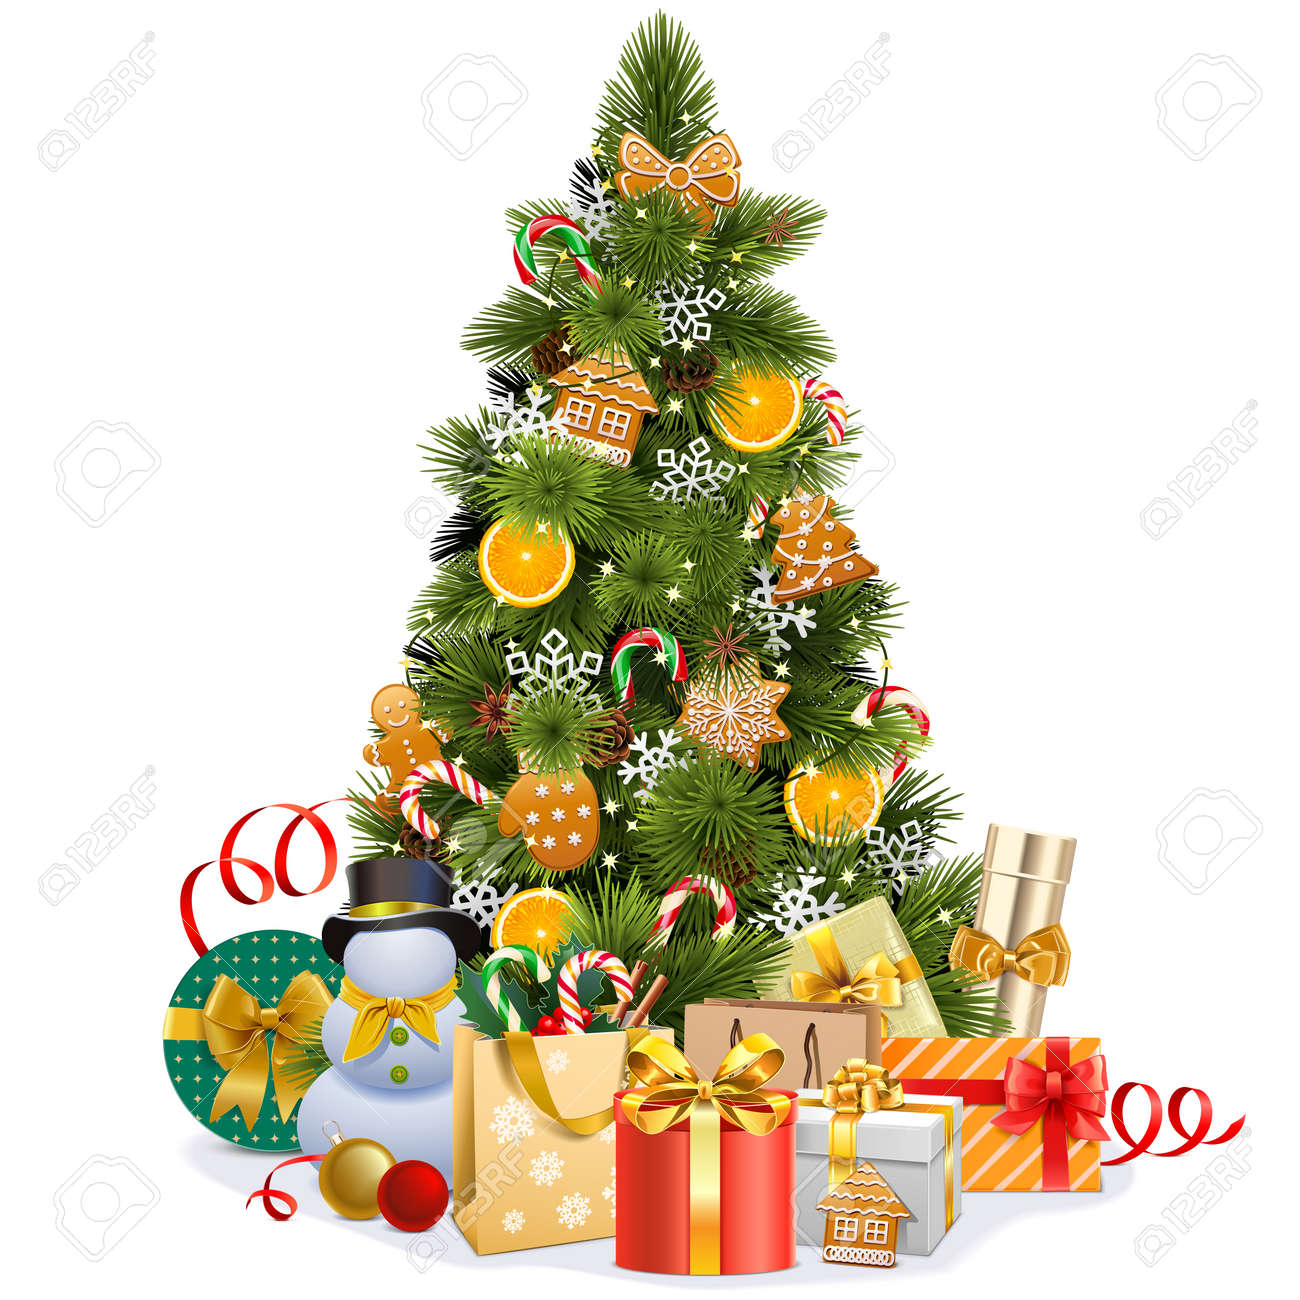 Vector Christmas Pine Tree with Sweet Decorations isolated on white background - 157102067